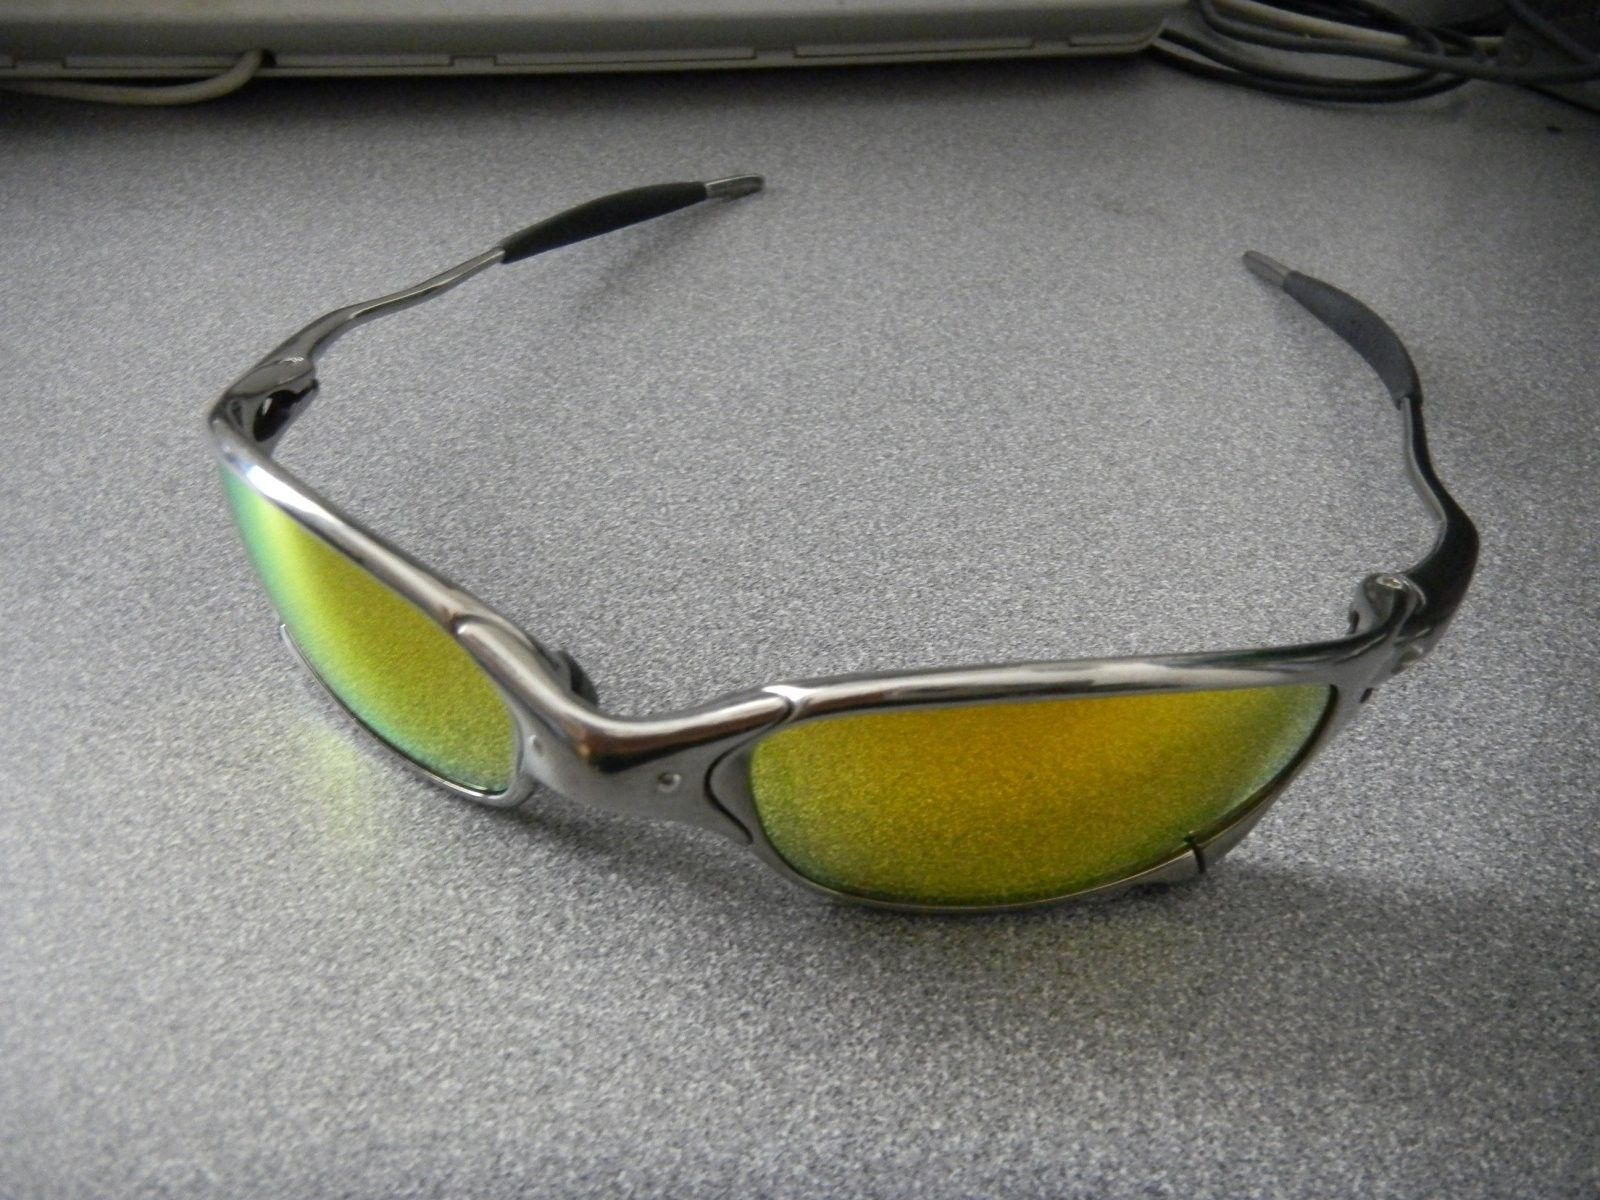 XX 24k and polished fire polarized Juliet - uploadfromtaptalk1420885766154.jpeg